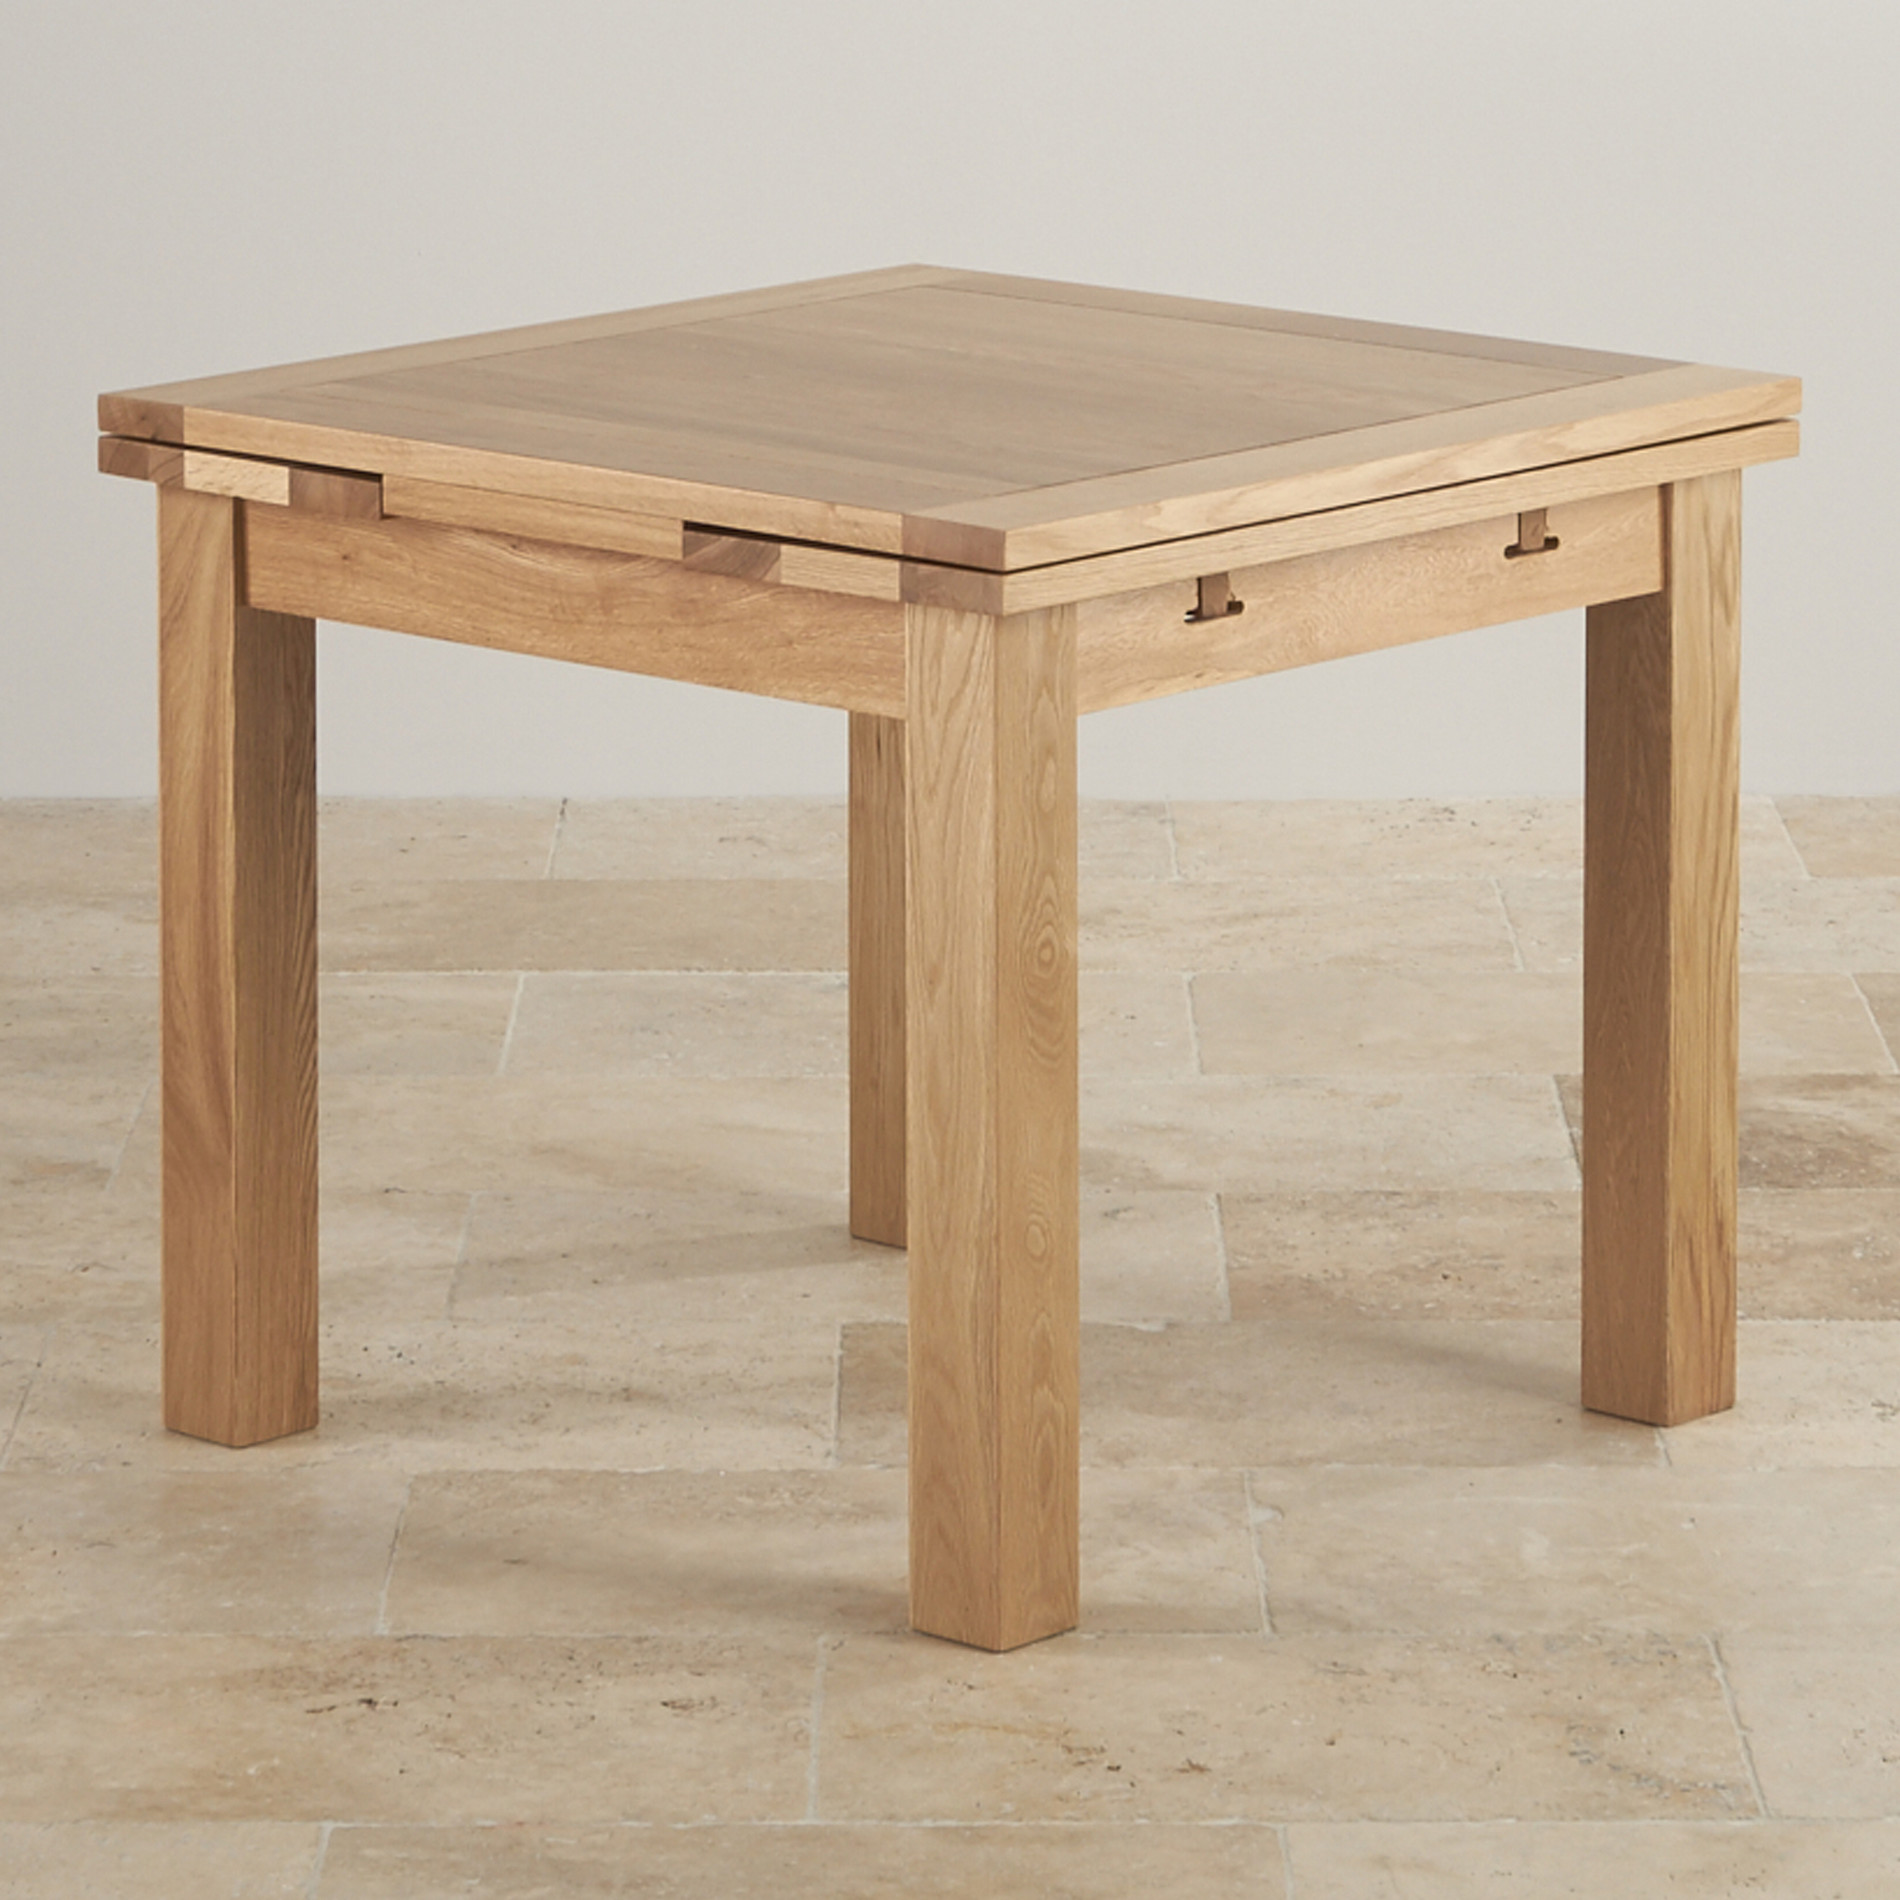 Dorset 3ft X 3ft Natural Oak Extending Dining Table Seats